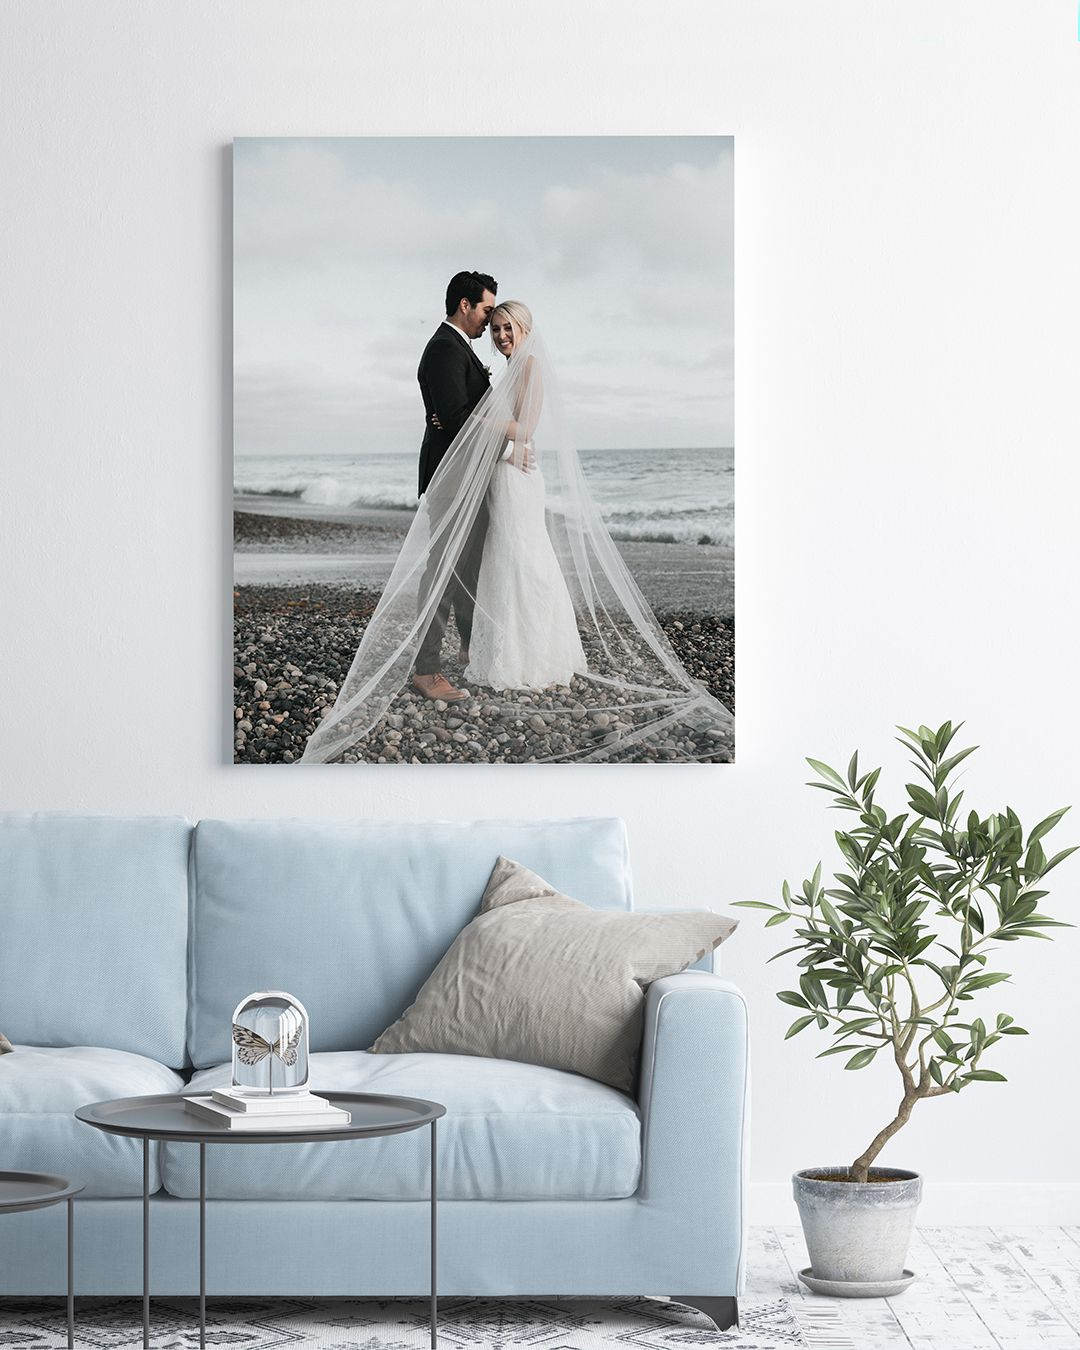 A Canvas Print With A Beautiful Moment From Your Wedding Day Makes For The Most Precious Keepsake Ever Wedding Canvas Wedding Photo Canvas Print Wedding Photos